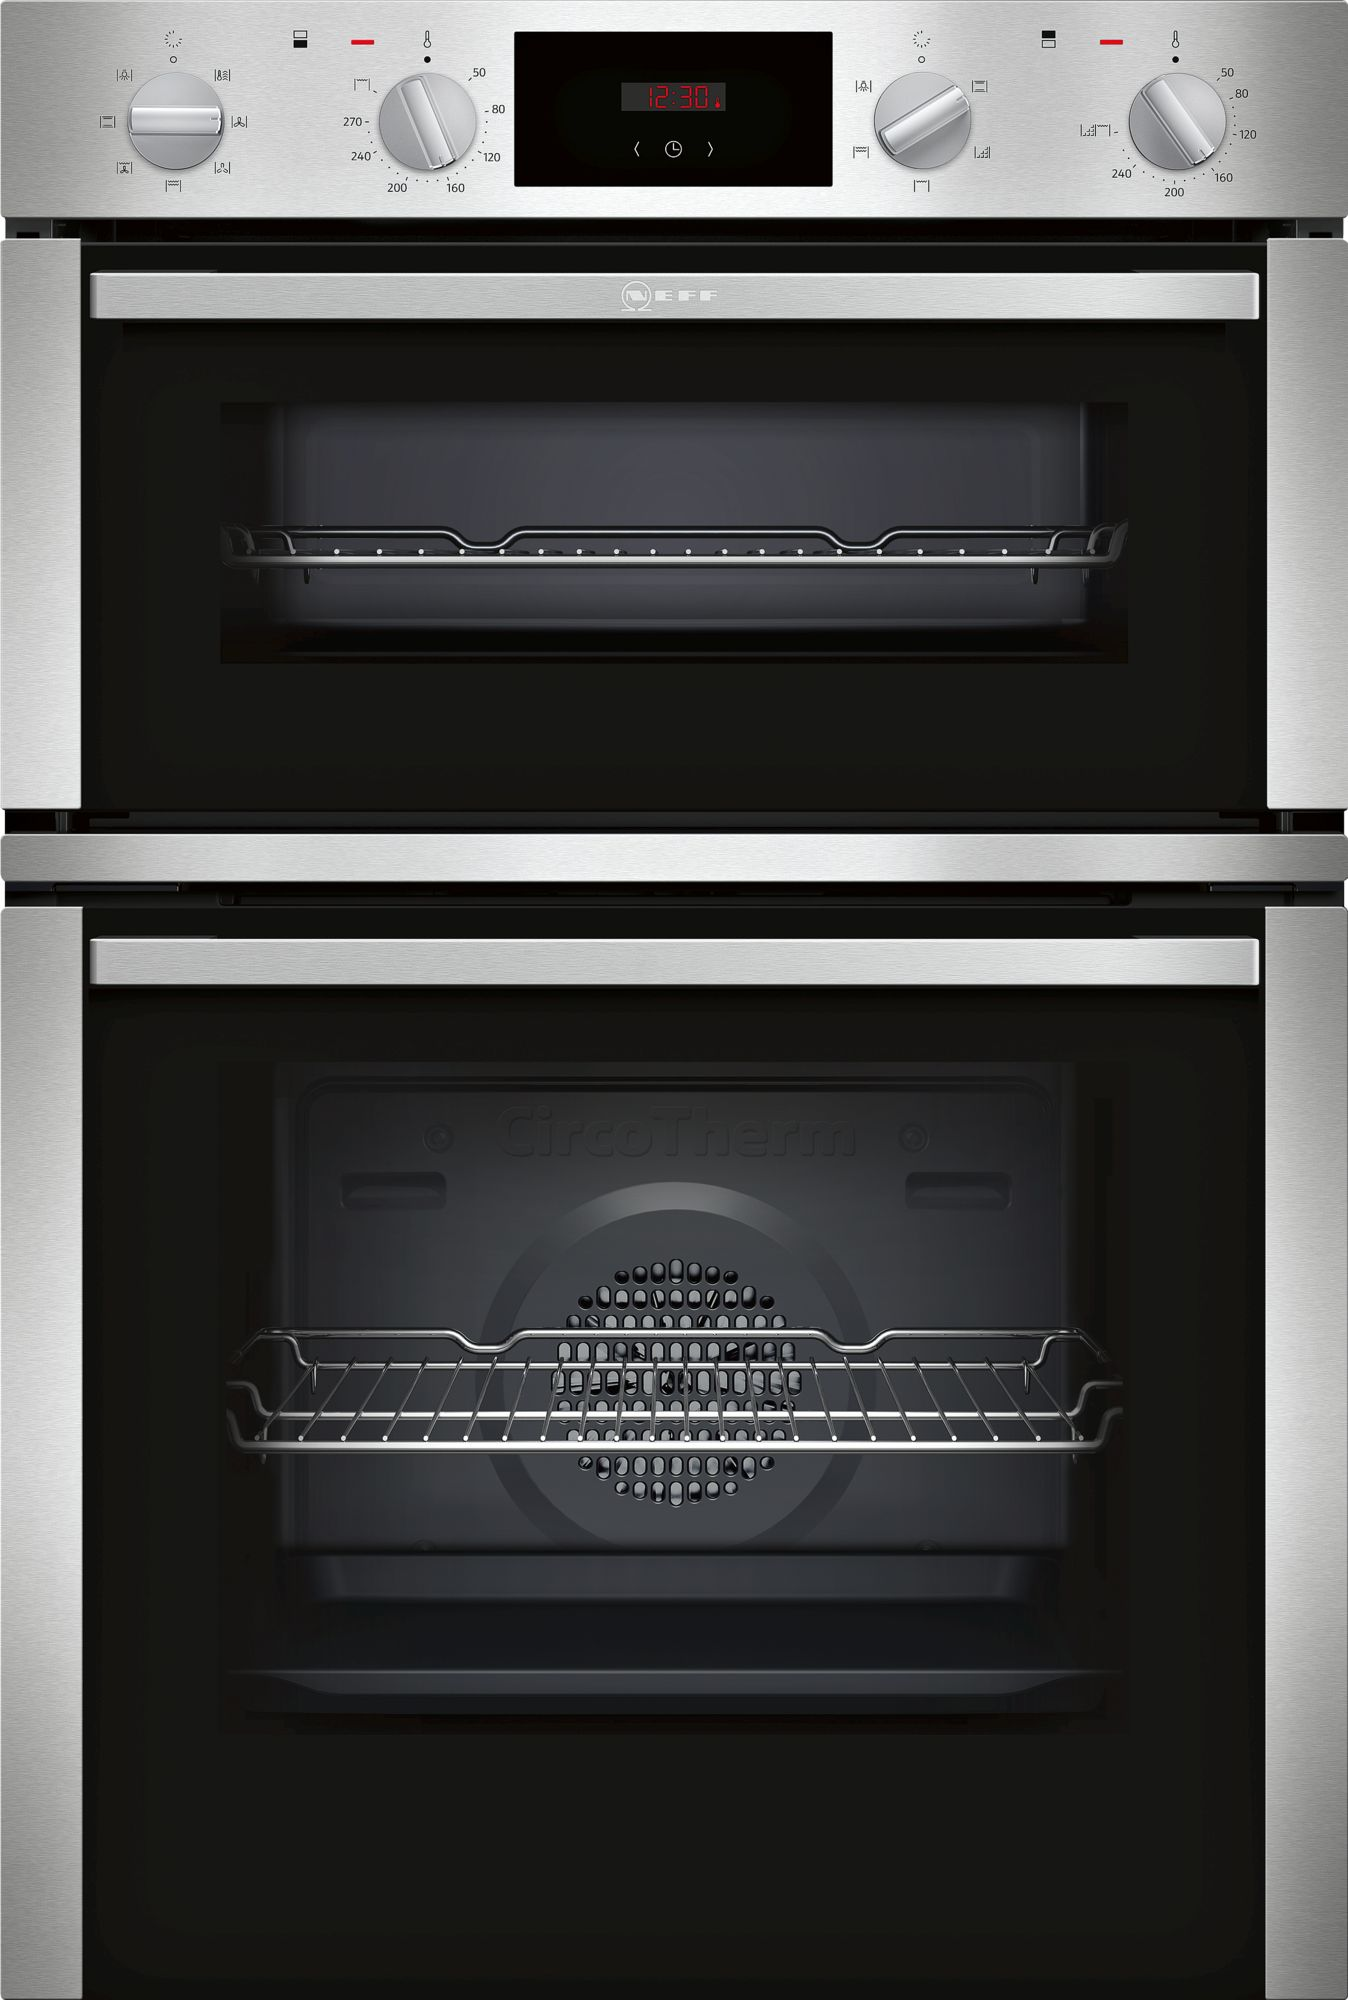 Neff U1dcc1bn0b Built In Electric Double Oven In Stainless